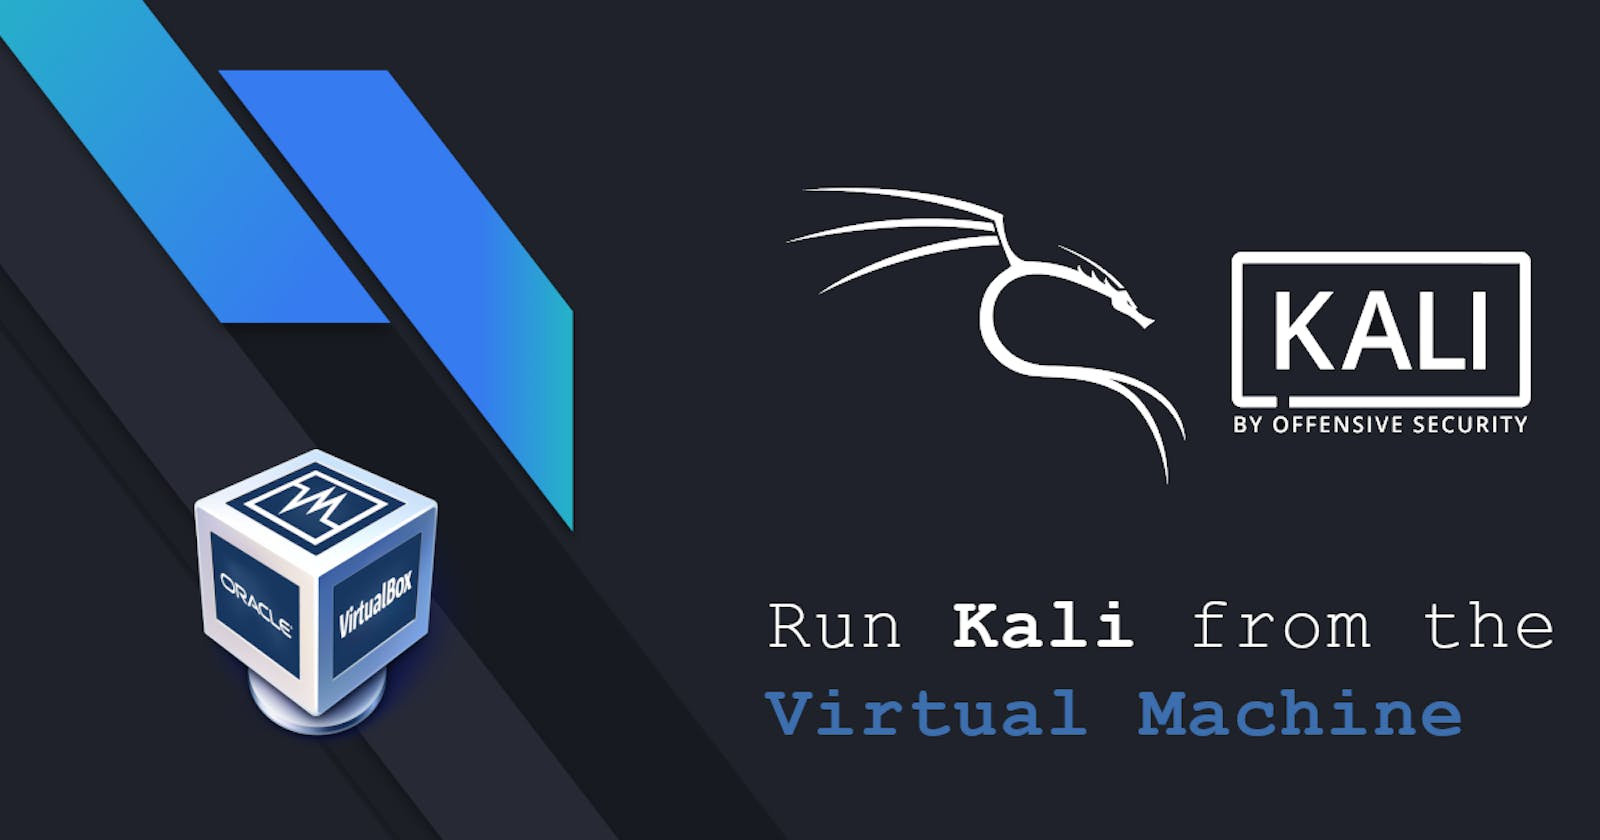 How to install Kali on the Virtual Machine